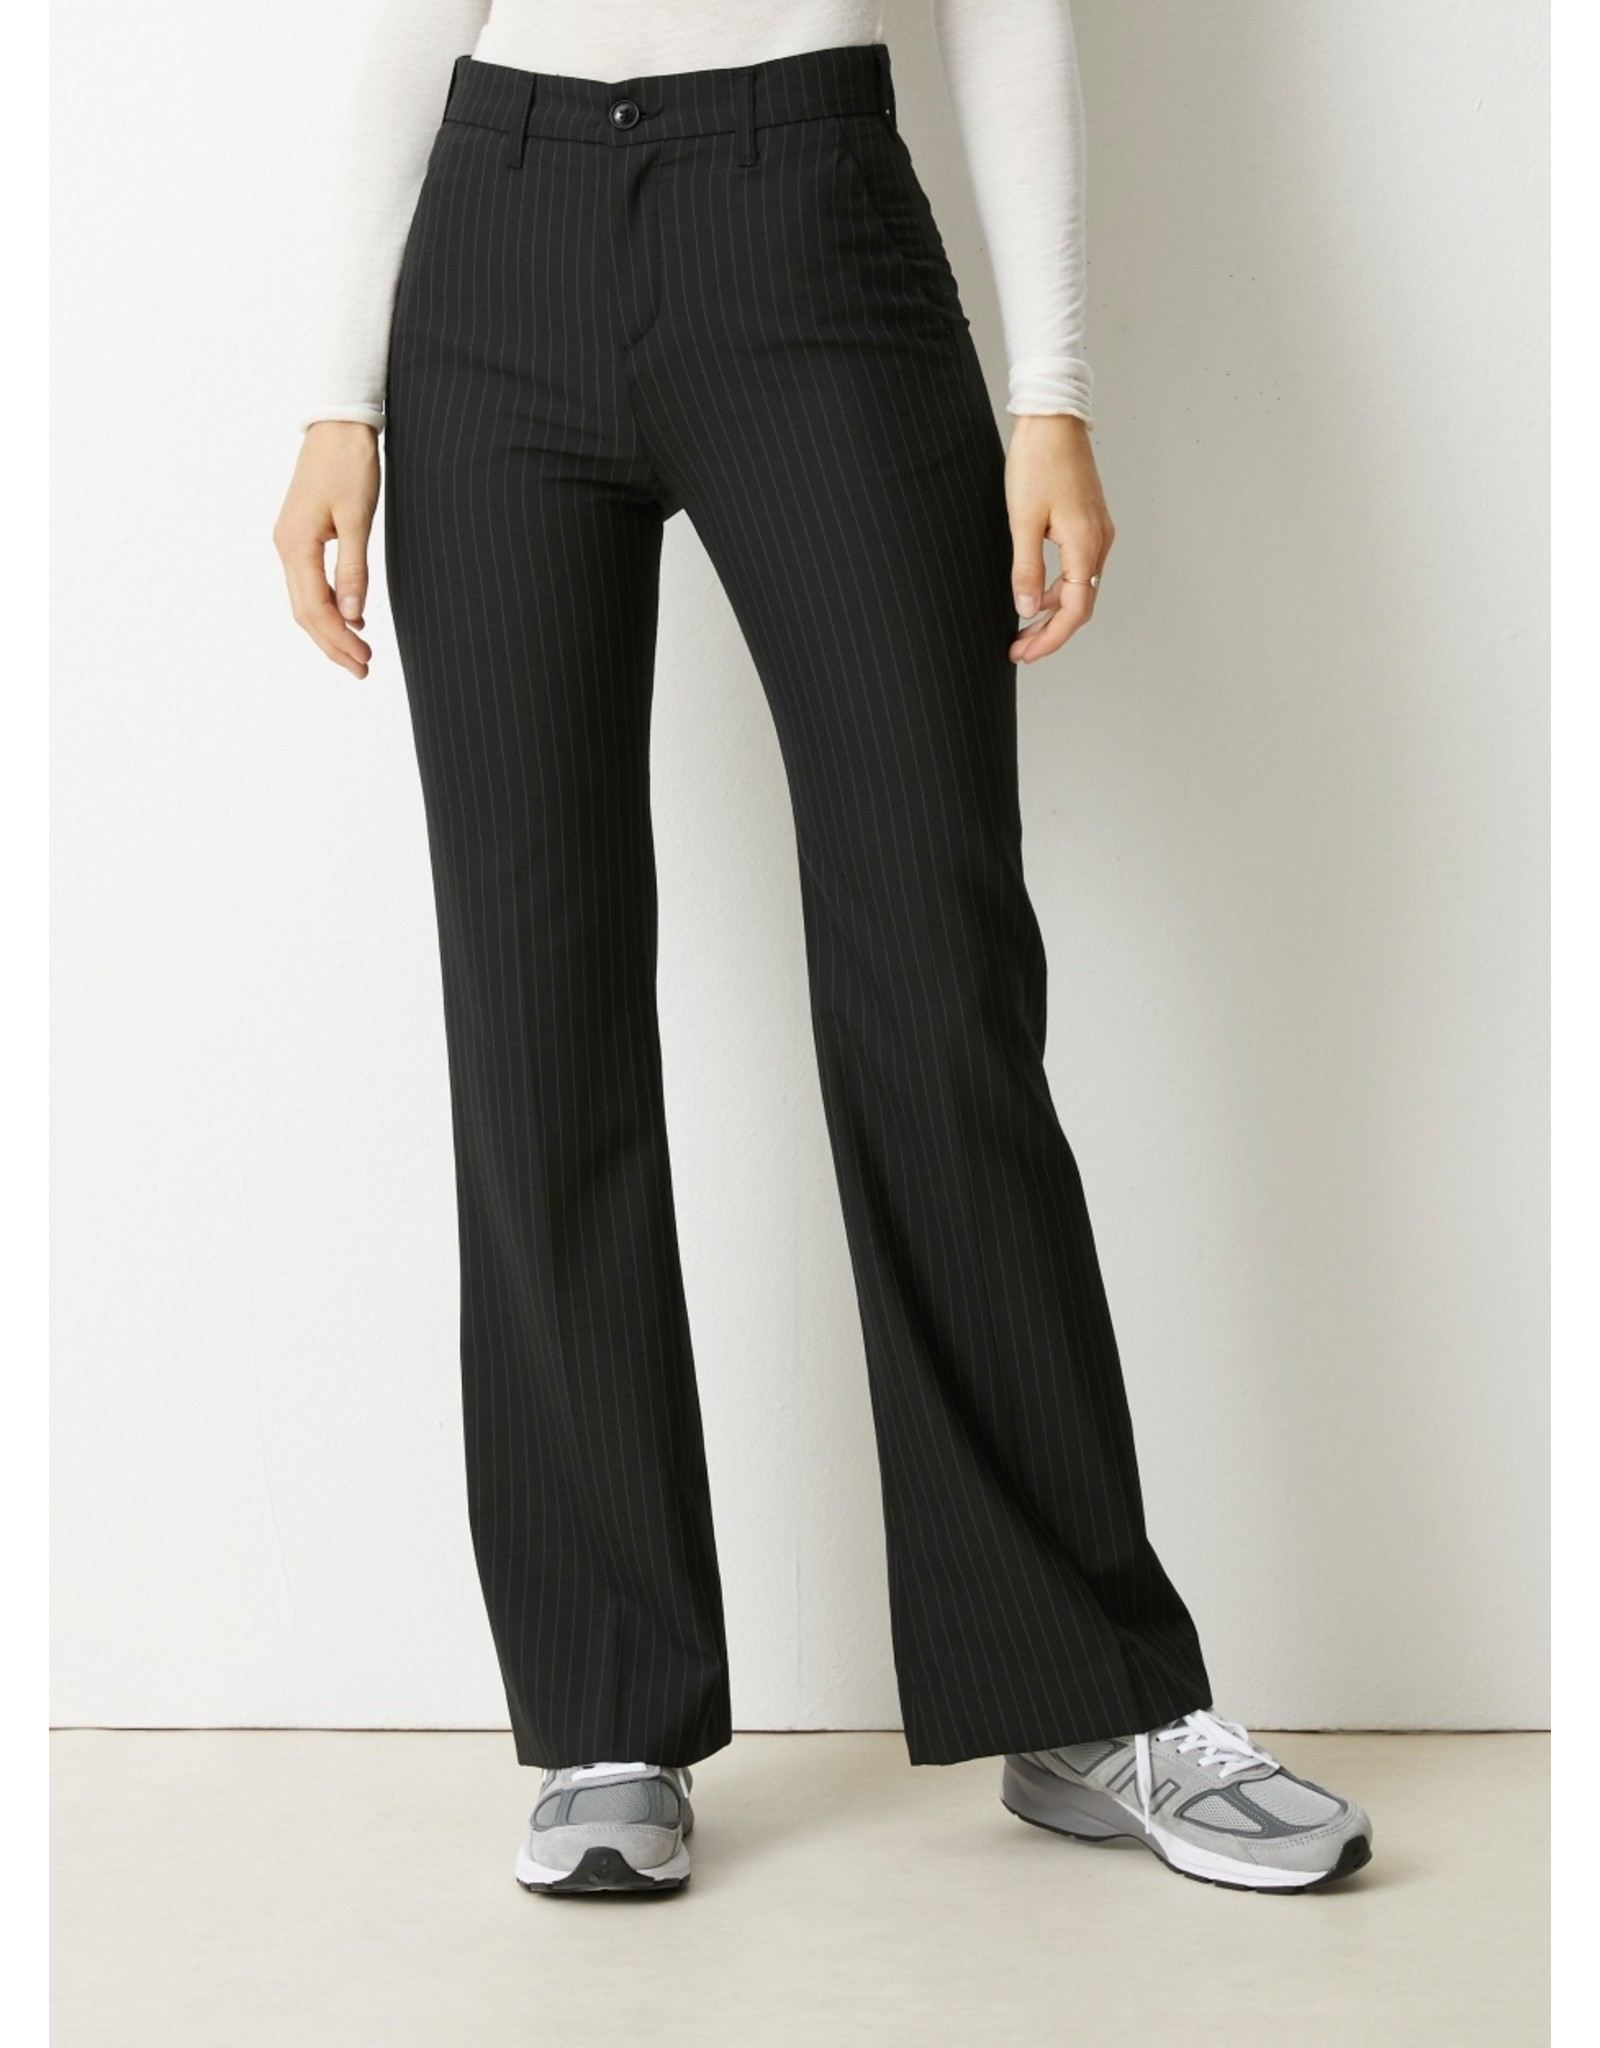 LOIS PANTS SILVIA LUXURY